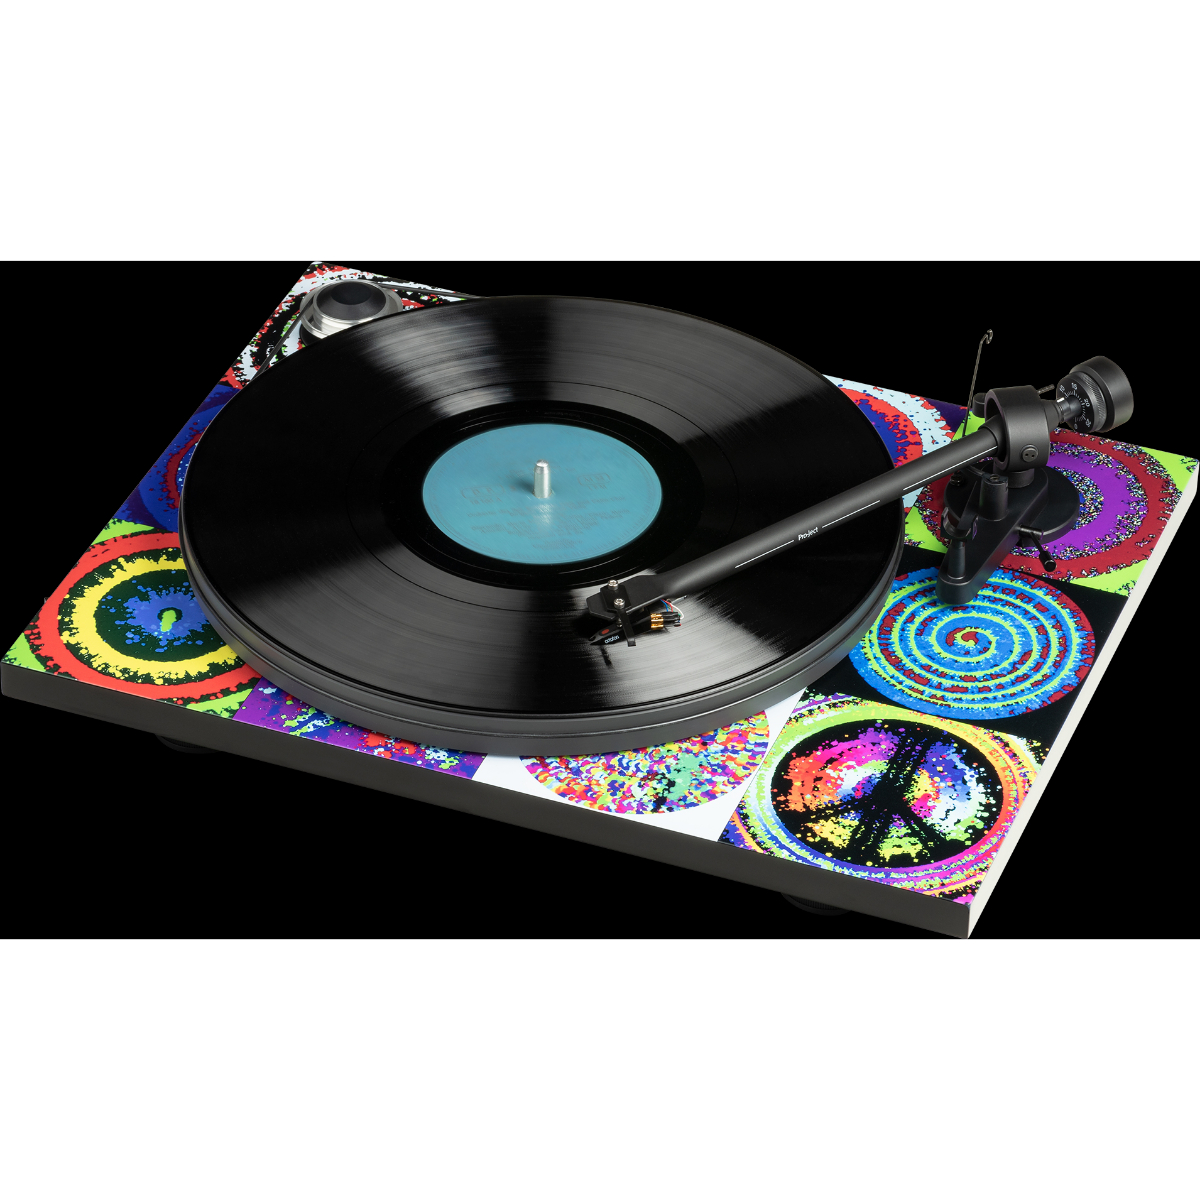 Pro-Ject Essential III – Ringo Starr Peace & Love Turntable